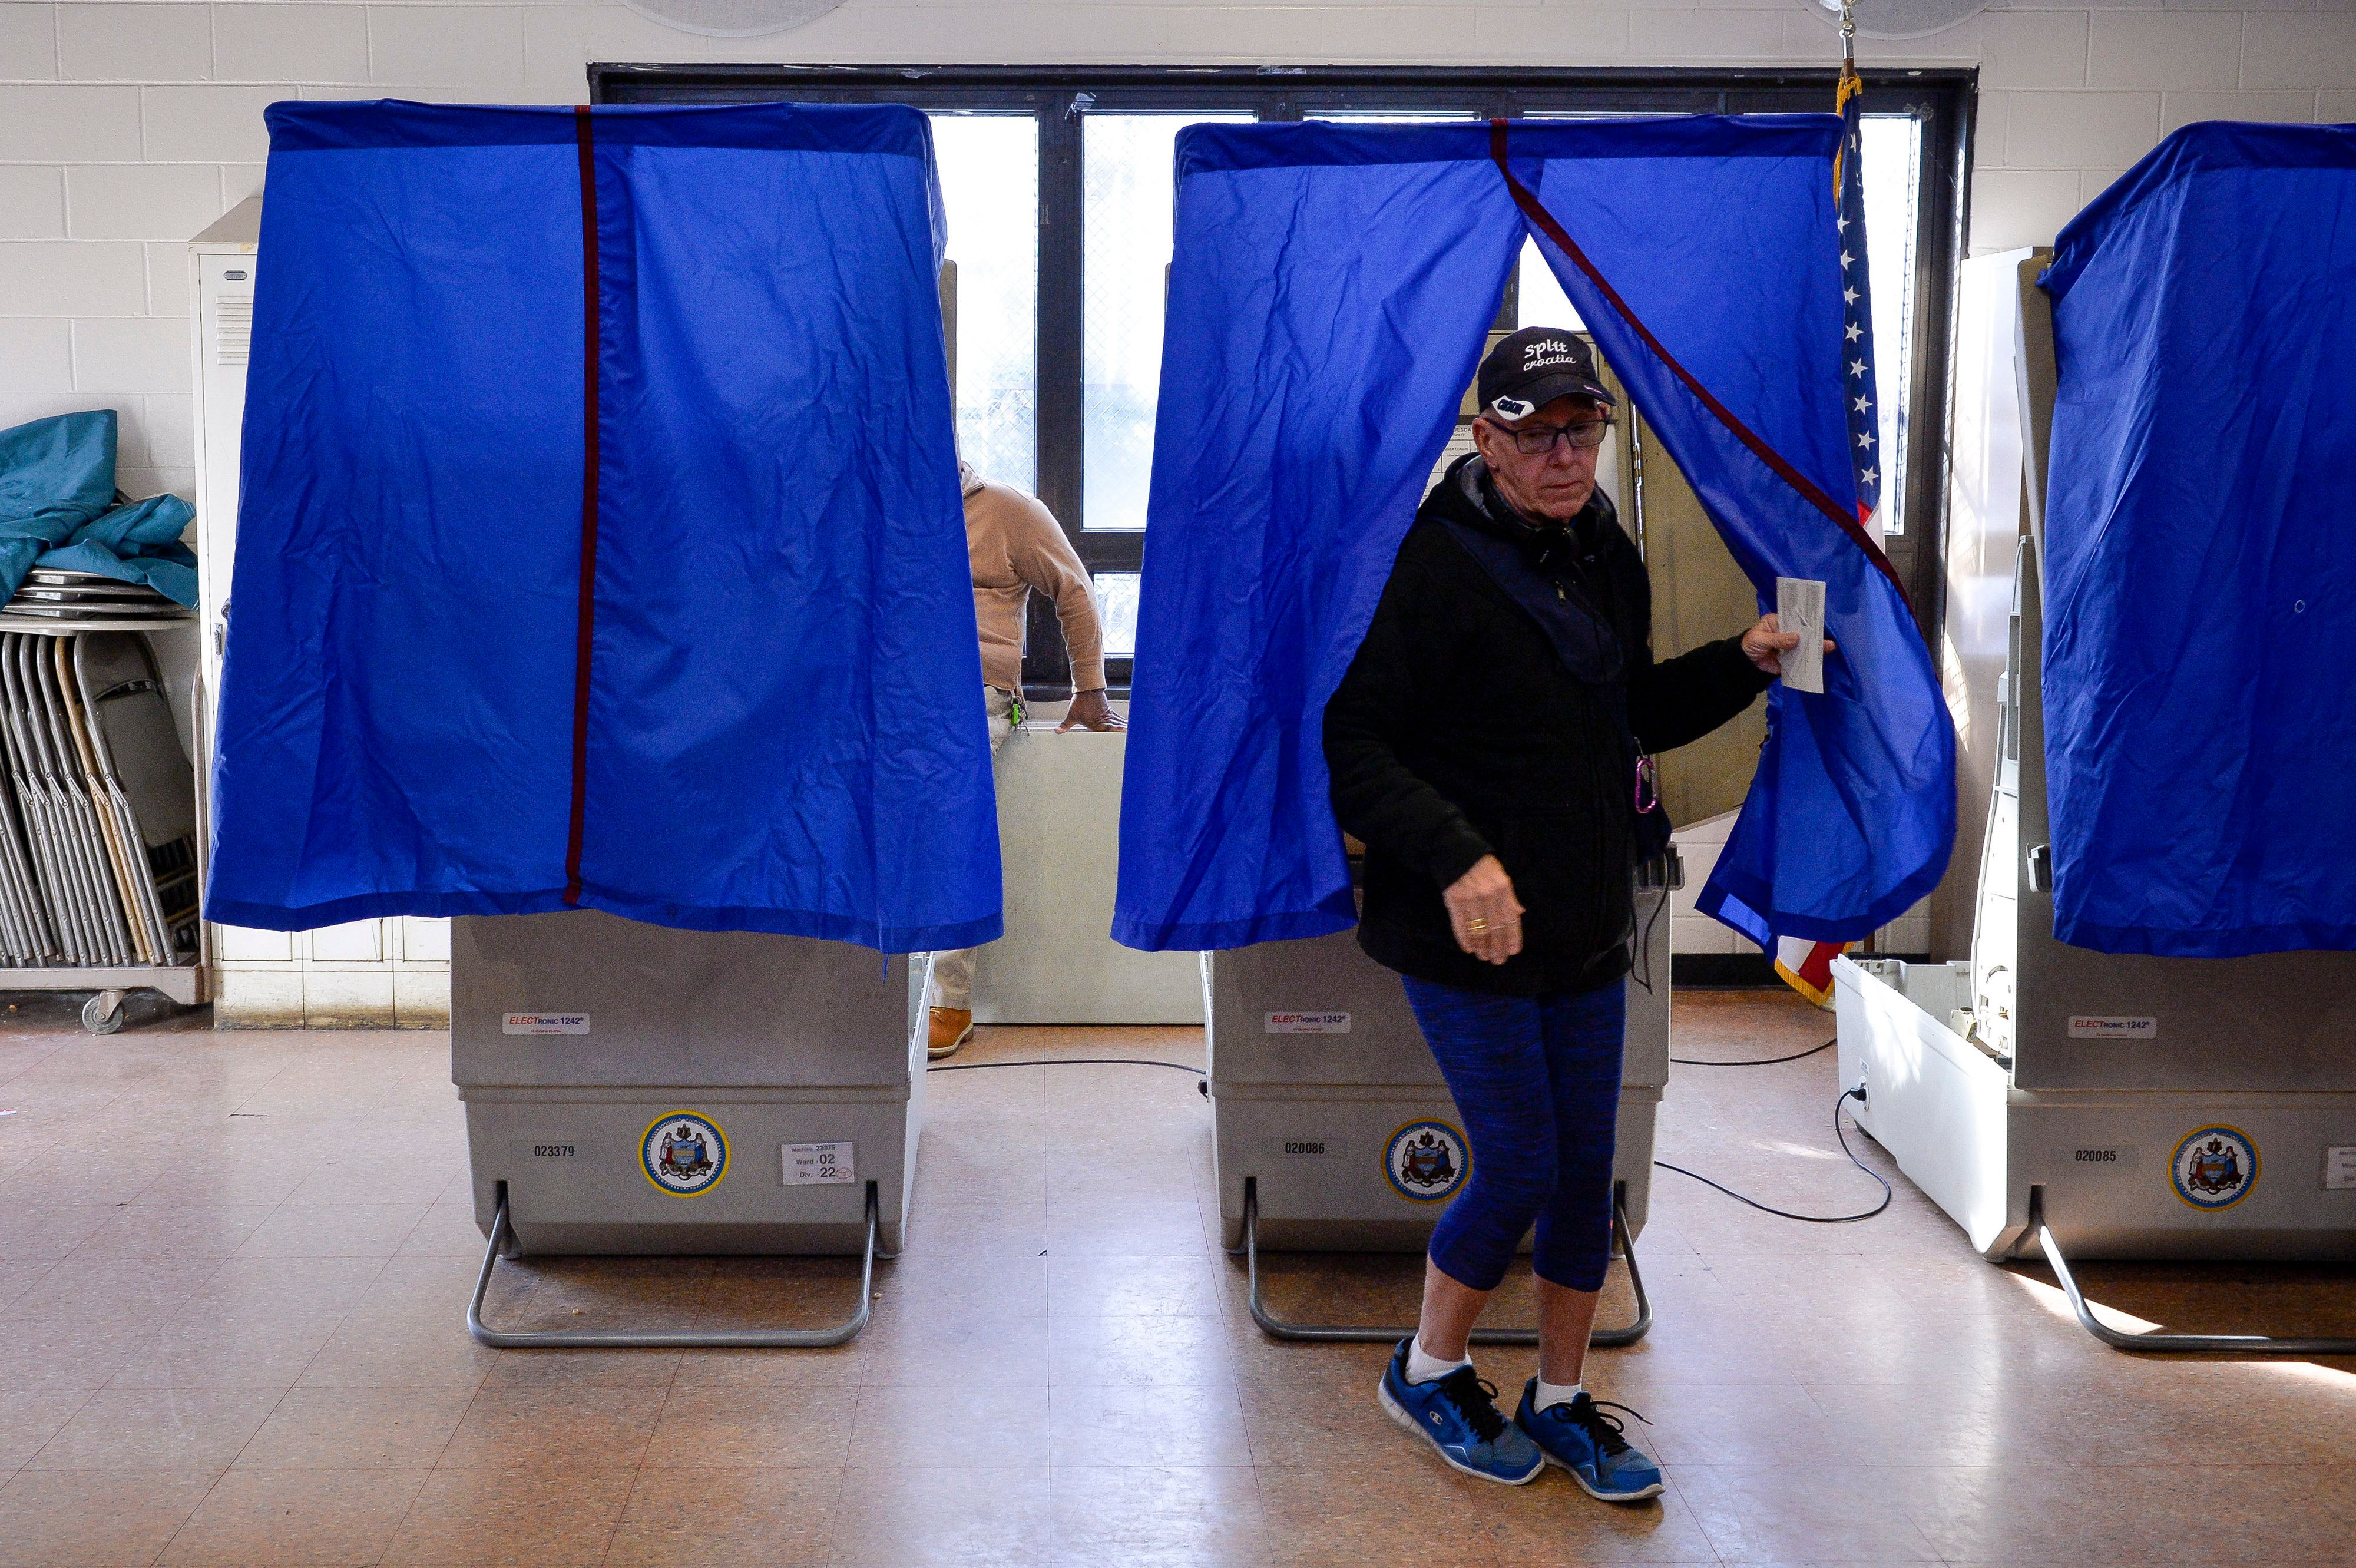 A voter leaves the polling booth during the U.S. presidential election in Philadelphia, Pennsylvania, U.S. November 8, 2016.  REUTERS/Charles Mostoller